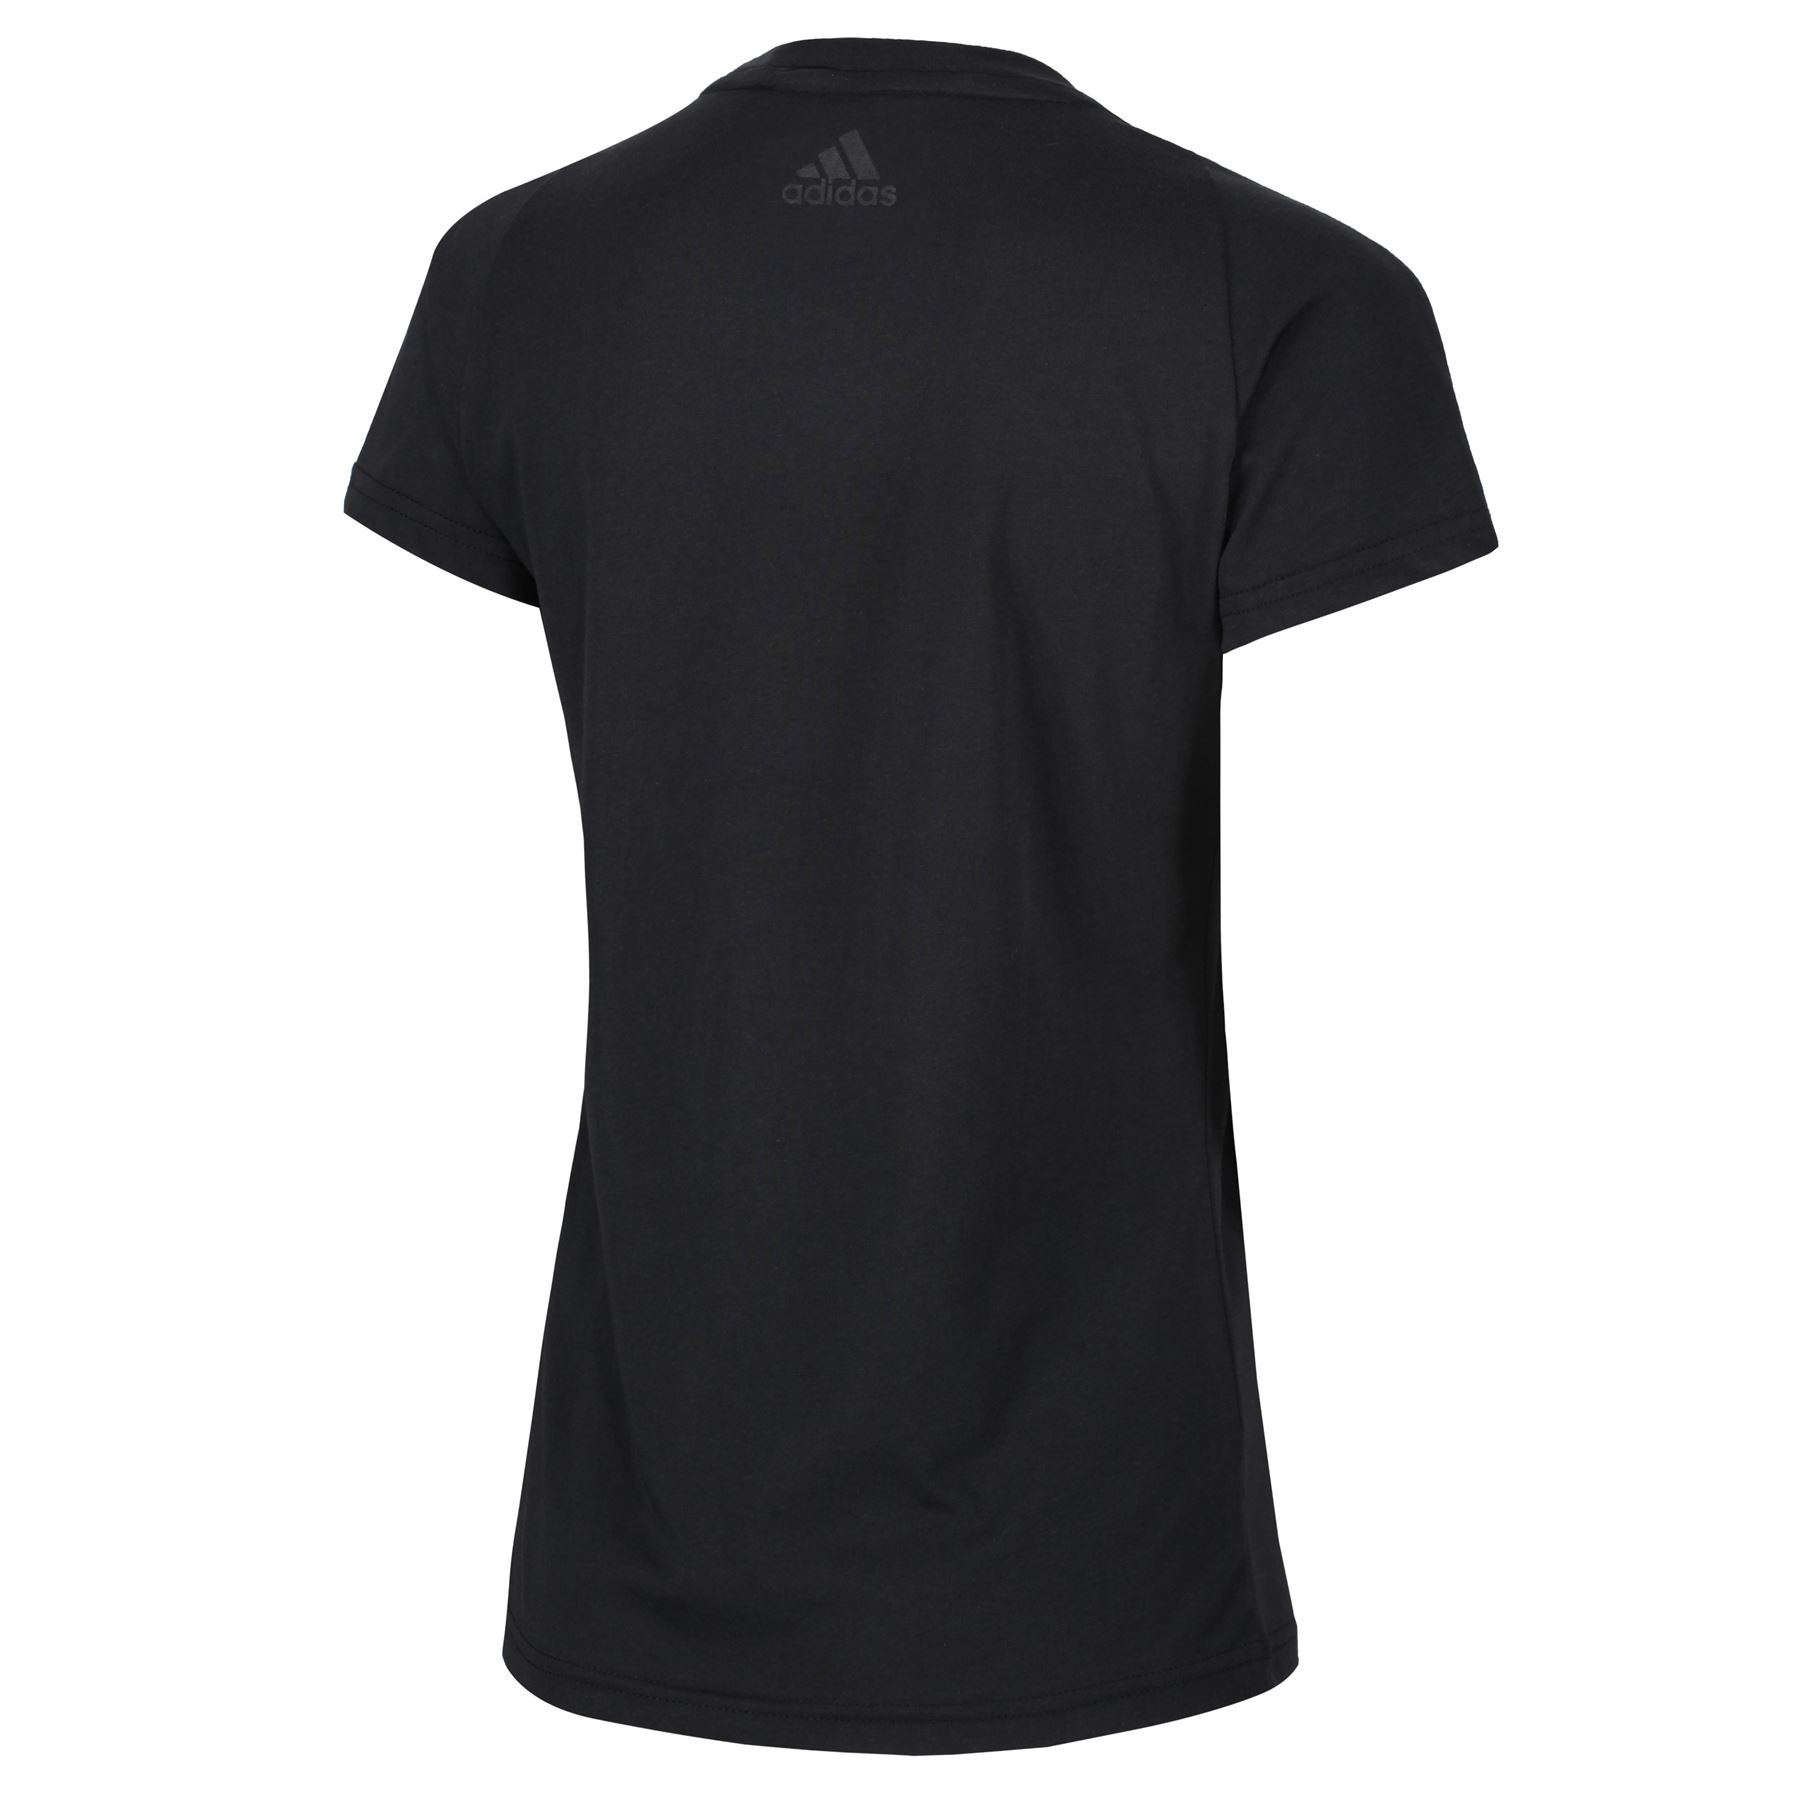 adidas-WOMEN-039-S-ESSENTIALS-LINEAR-T-SHIRT-GYM-BLACK-PINK-WHITE-NAVY-GIRLS-LADIES thumbnail 8